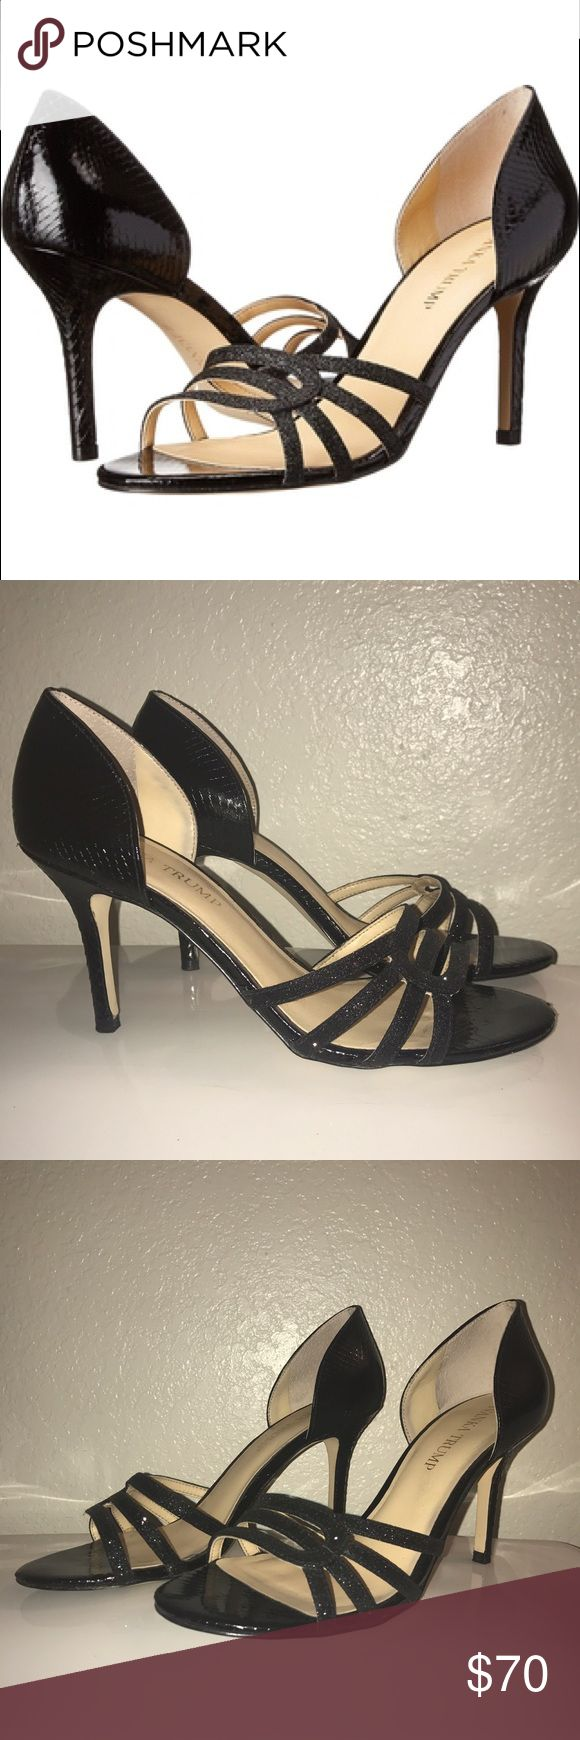 """Ivanka Trump Lady2 Sandal Worn once and in excellent condition!  Sophisticated, shimmering glitter and snake-embossed leather combine brilliantly in this versatile dress sandal. * Leather/glitter over leather upper, manmade lining, manmade sole * Open strappy toe with glitter straps * Round toe * Slip on * Snake-embossed leather back * 3.75"""" heel Ivanka Trump Shoes Heels"""